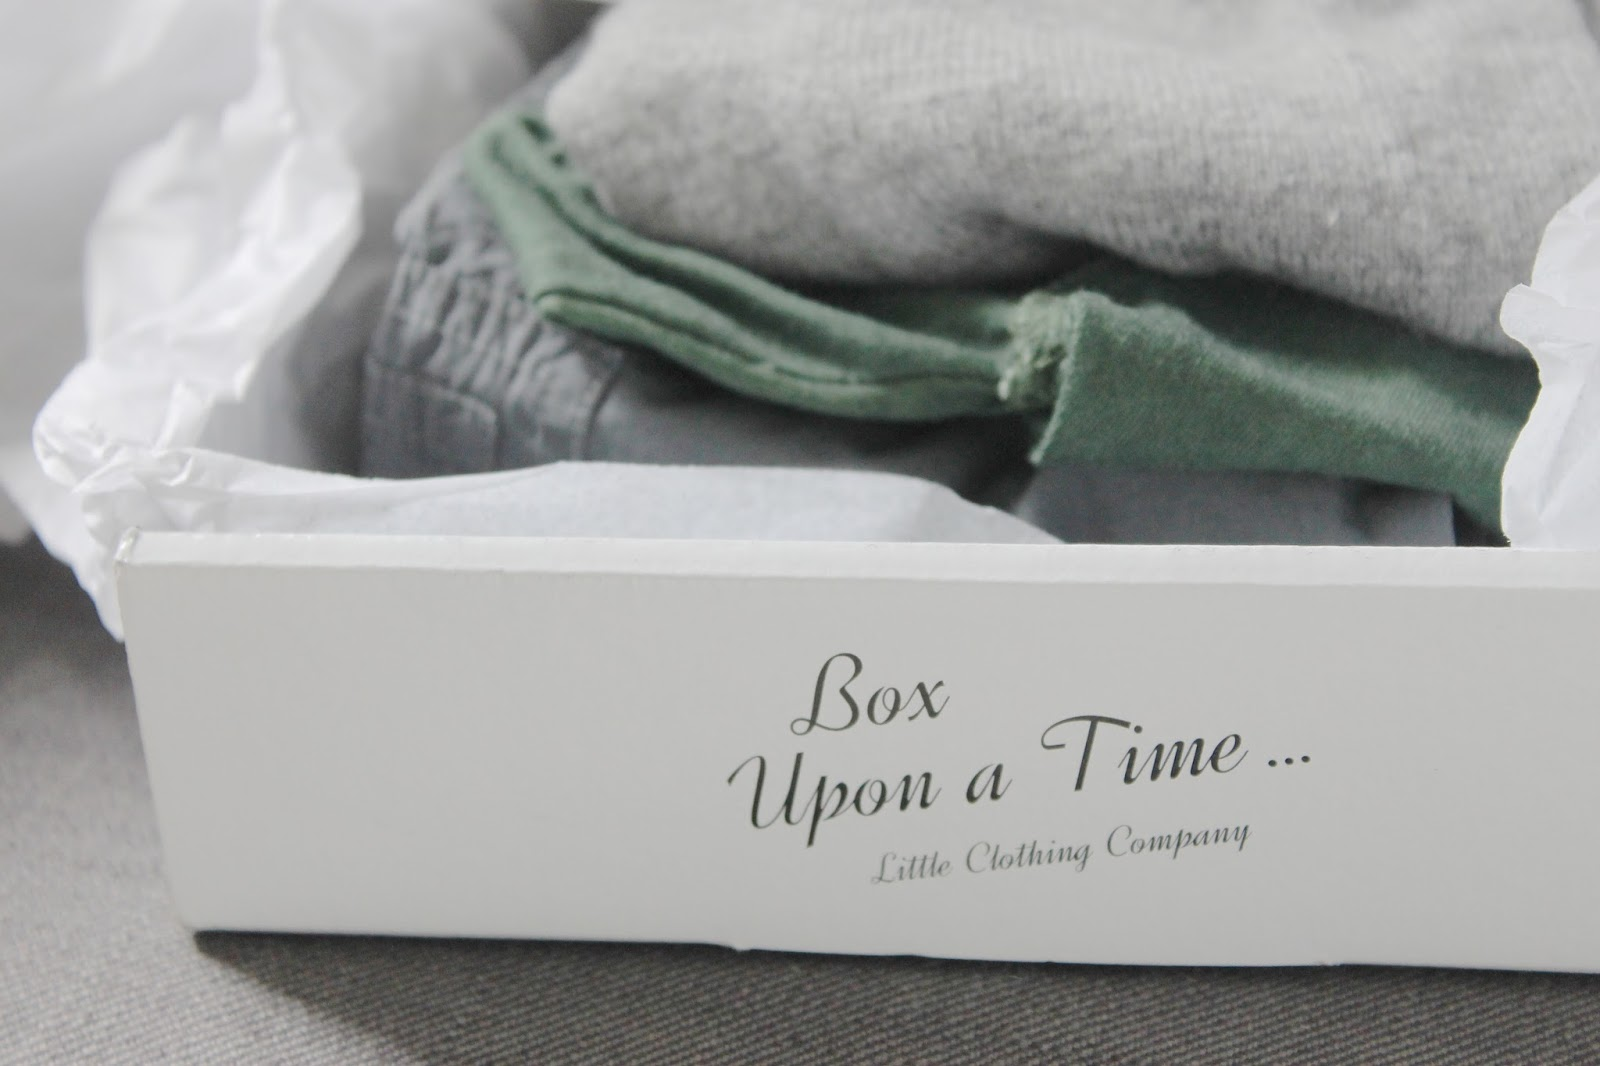 Box upon a time, box upon a time review, subscription boxes uk, baby box